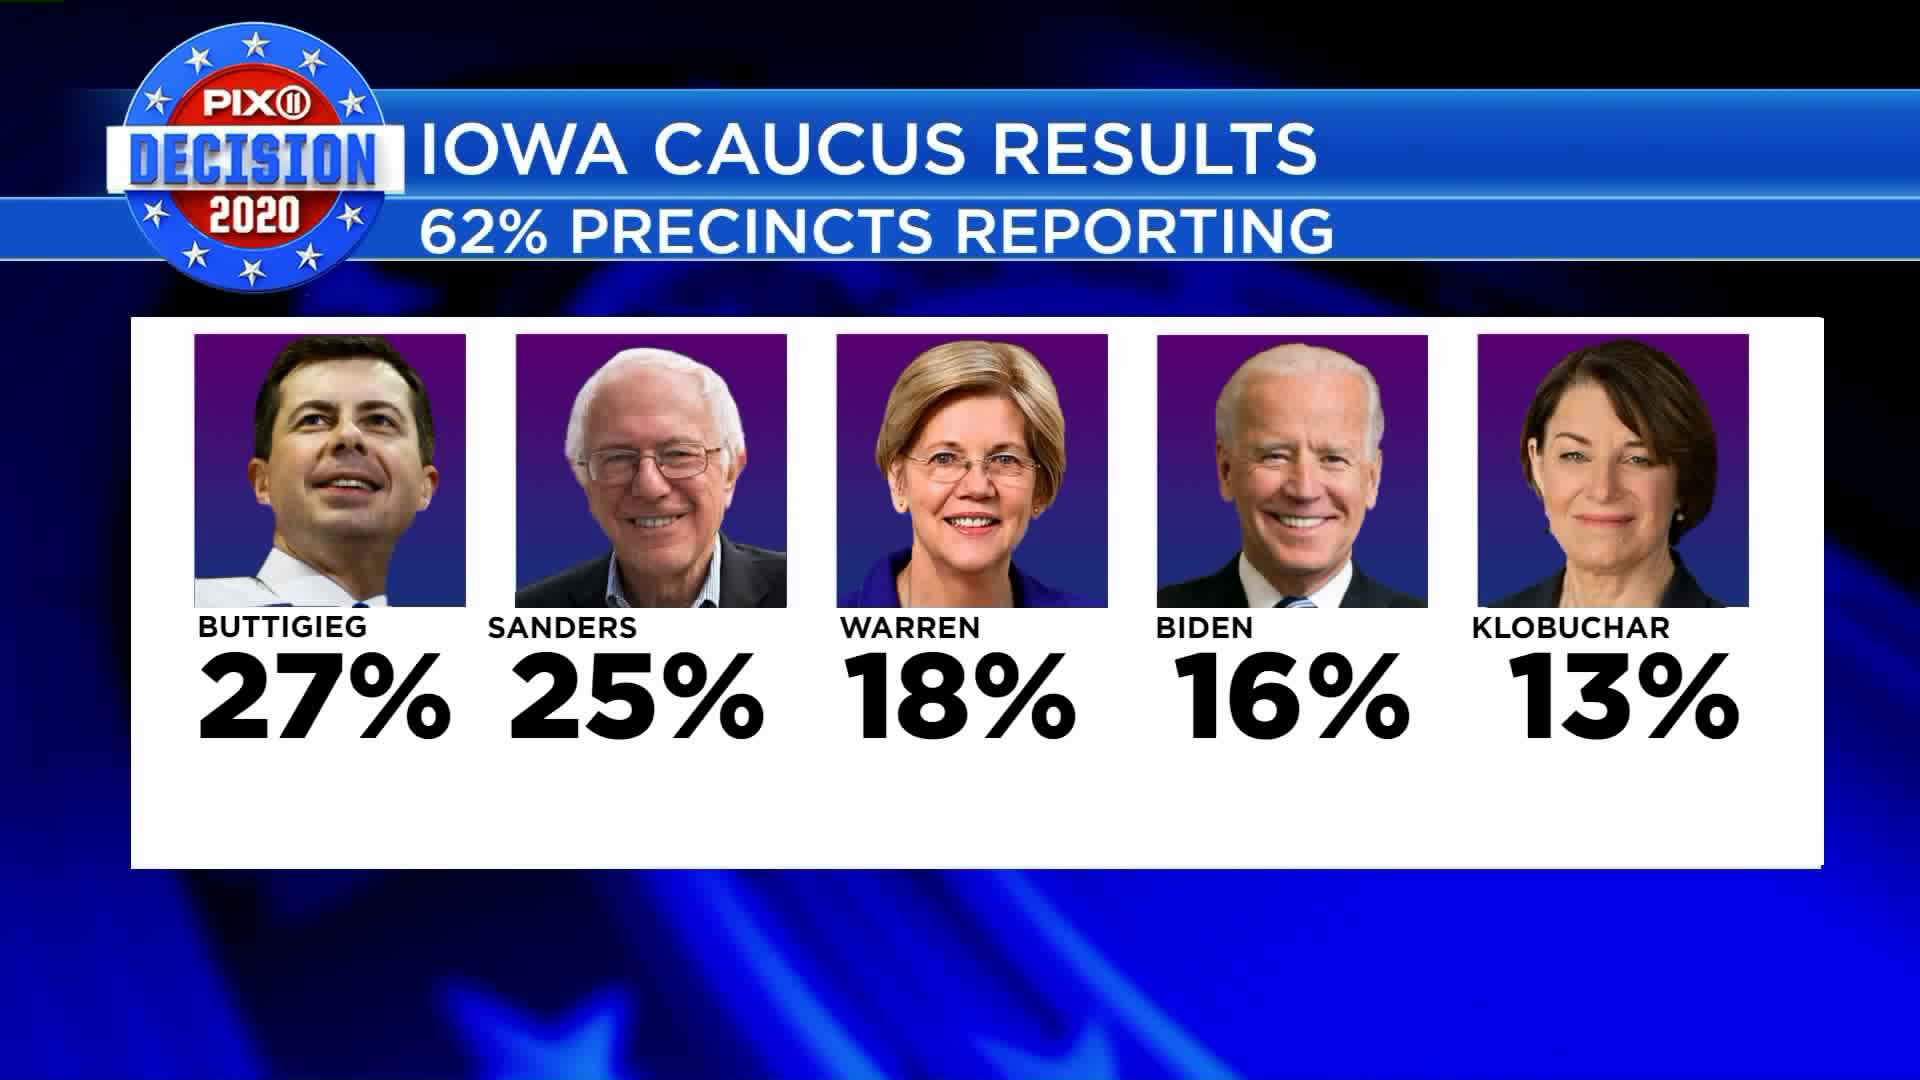 The Iowa Democratic Party has released some of the results from Monday's caucuses